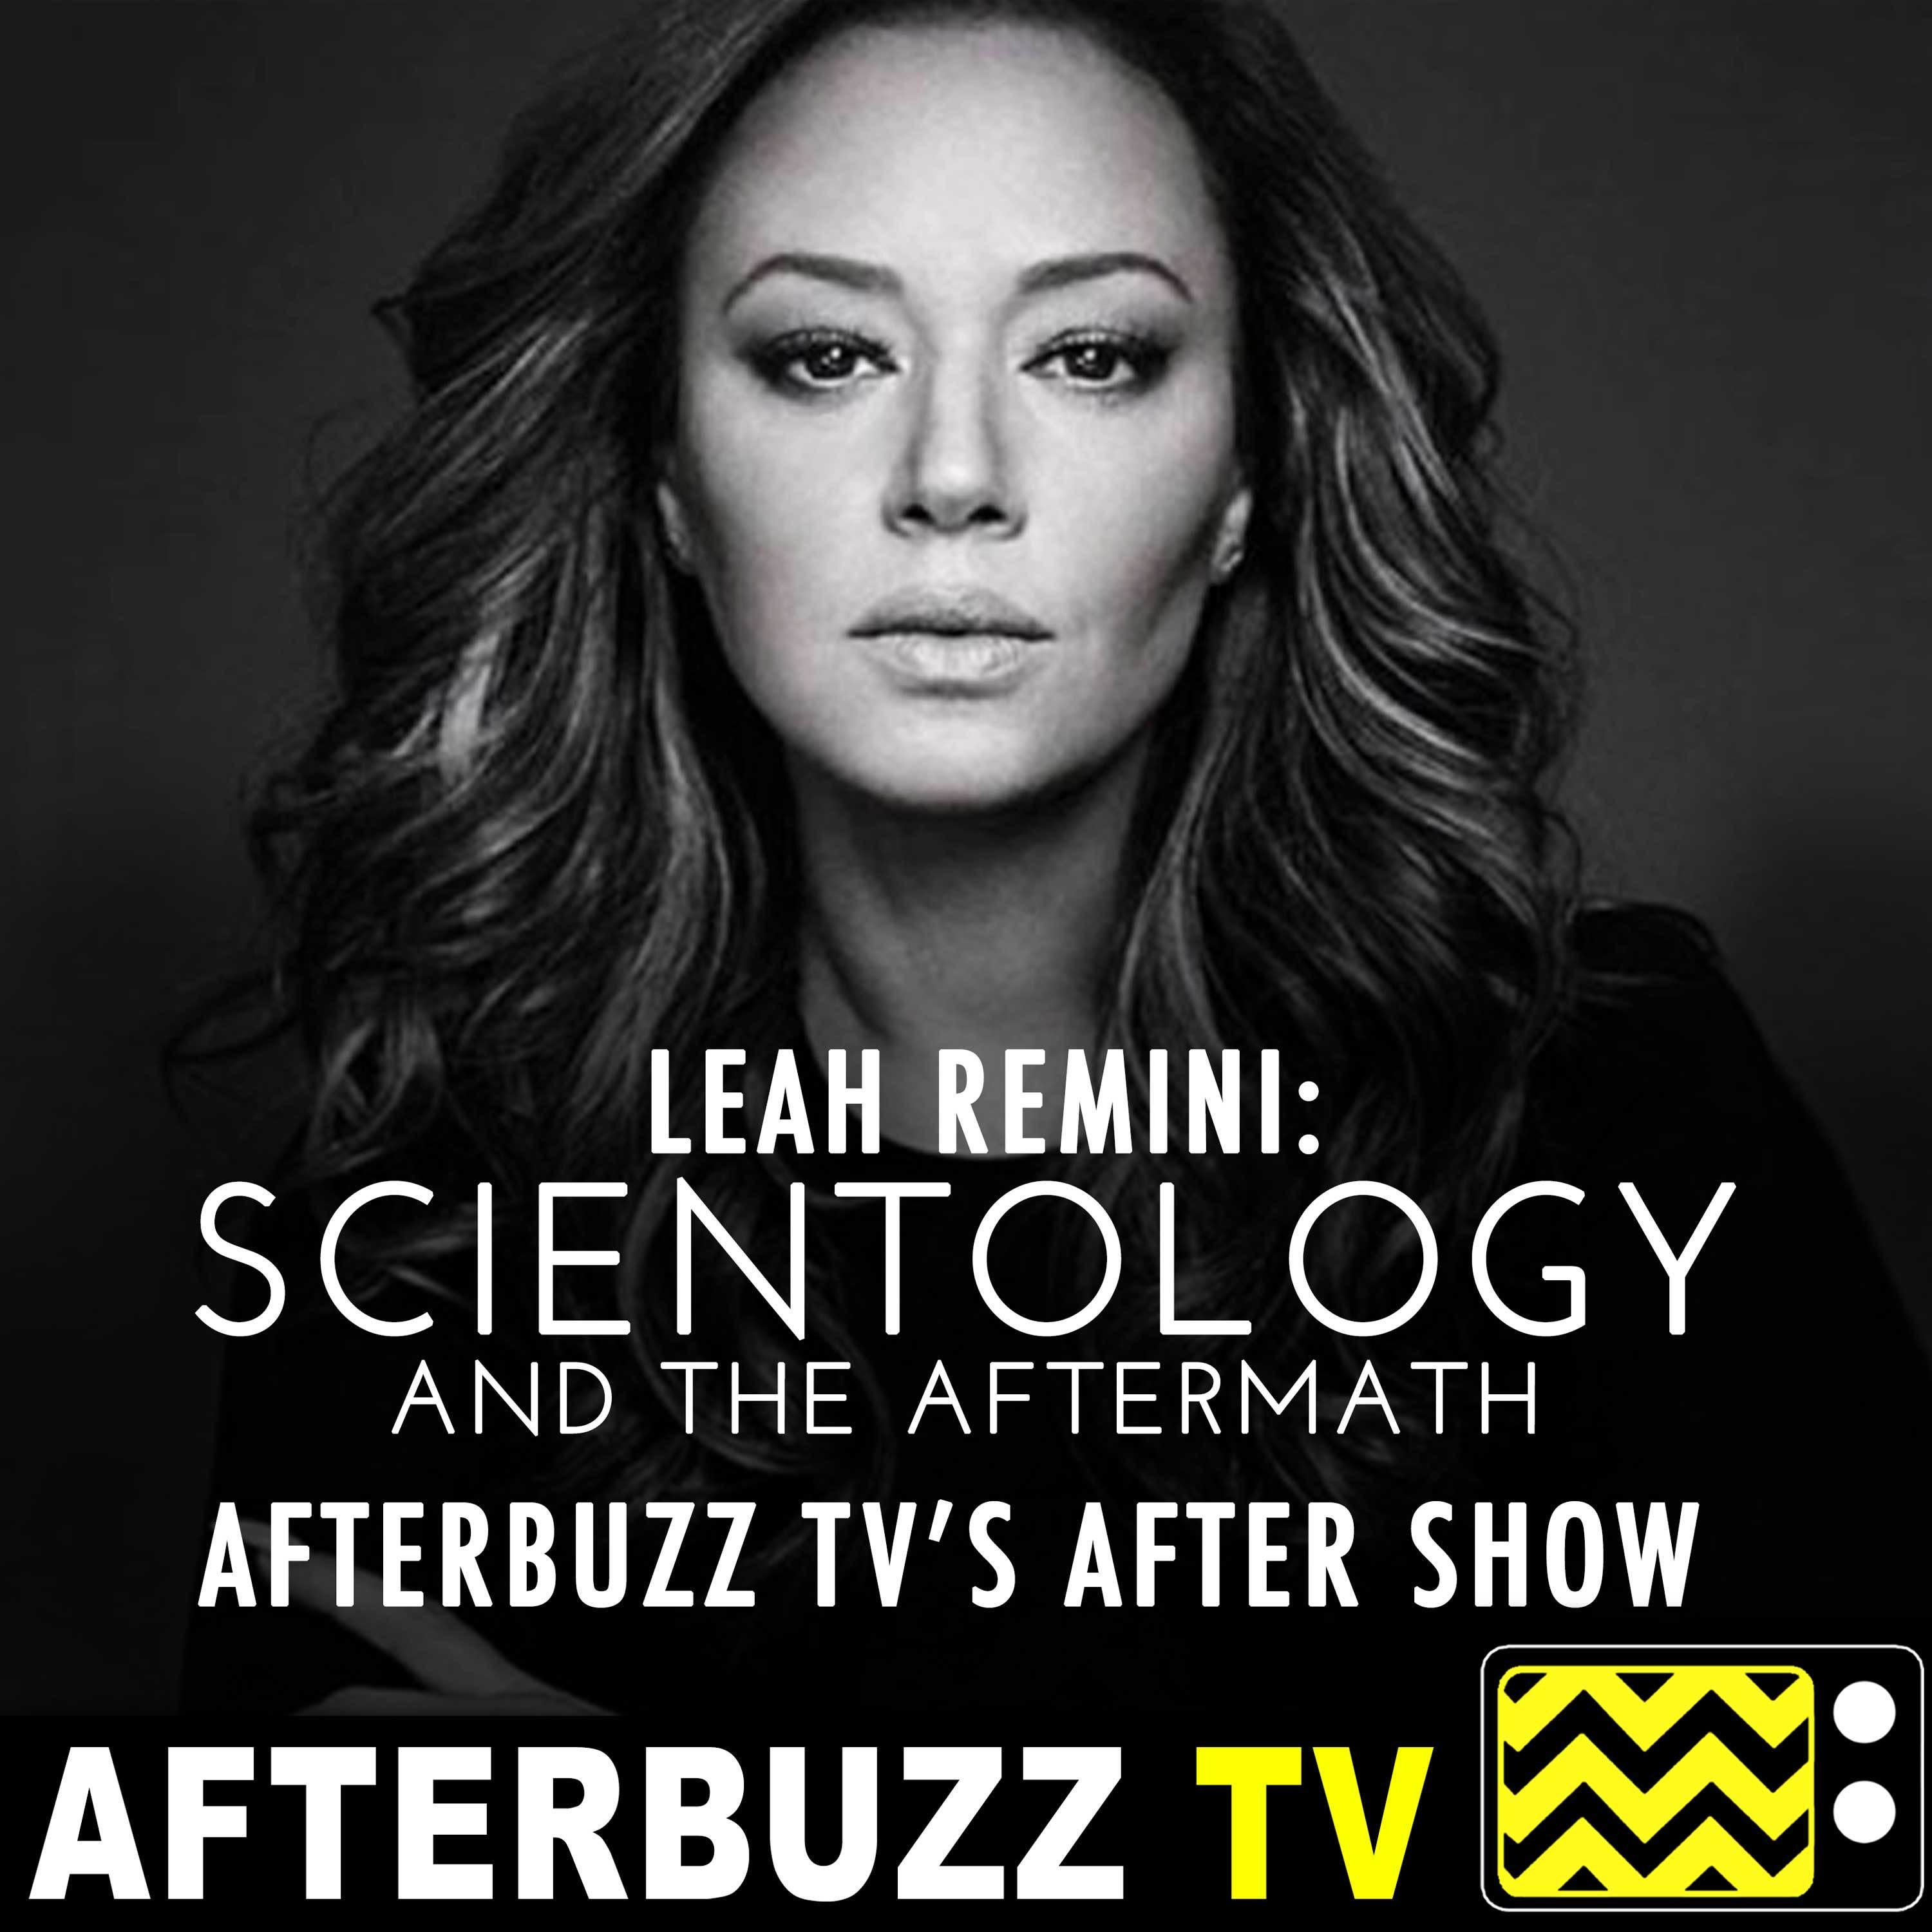 Leah Remini: Scientology and the Aftermath S:3 Buying a Town Part 2; Church and State E:9 & E:10 Rev